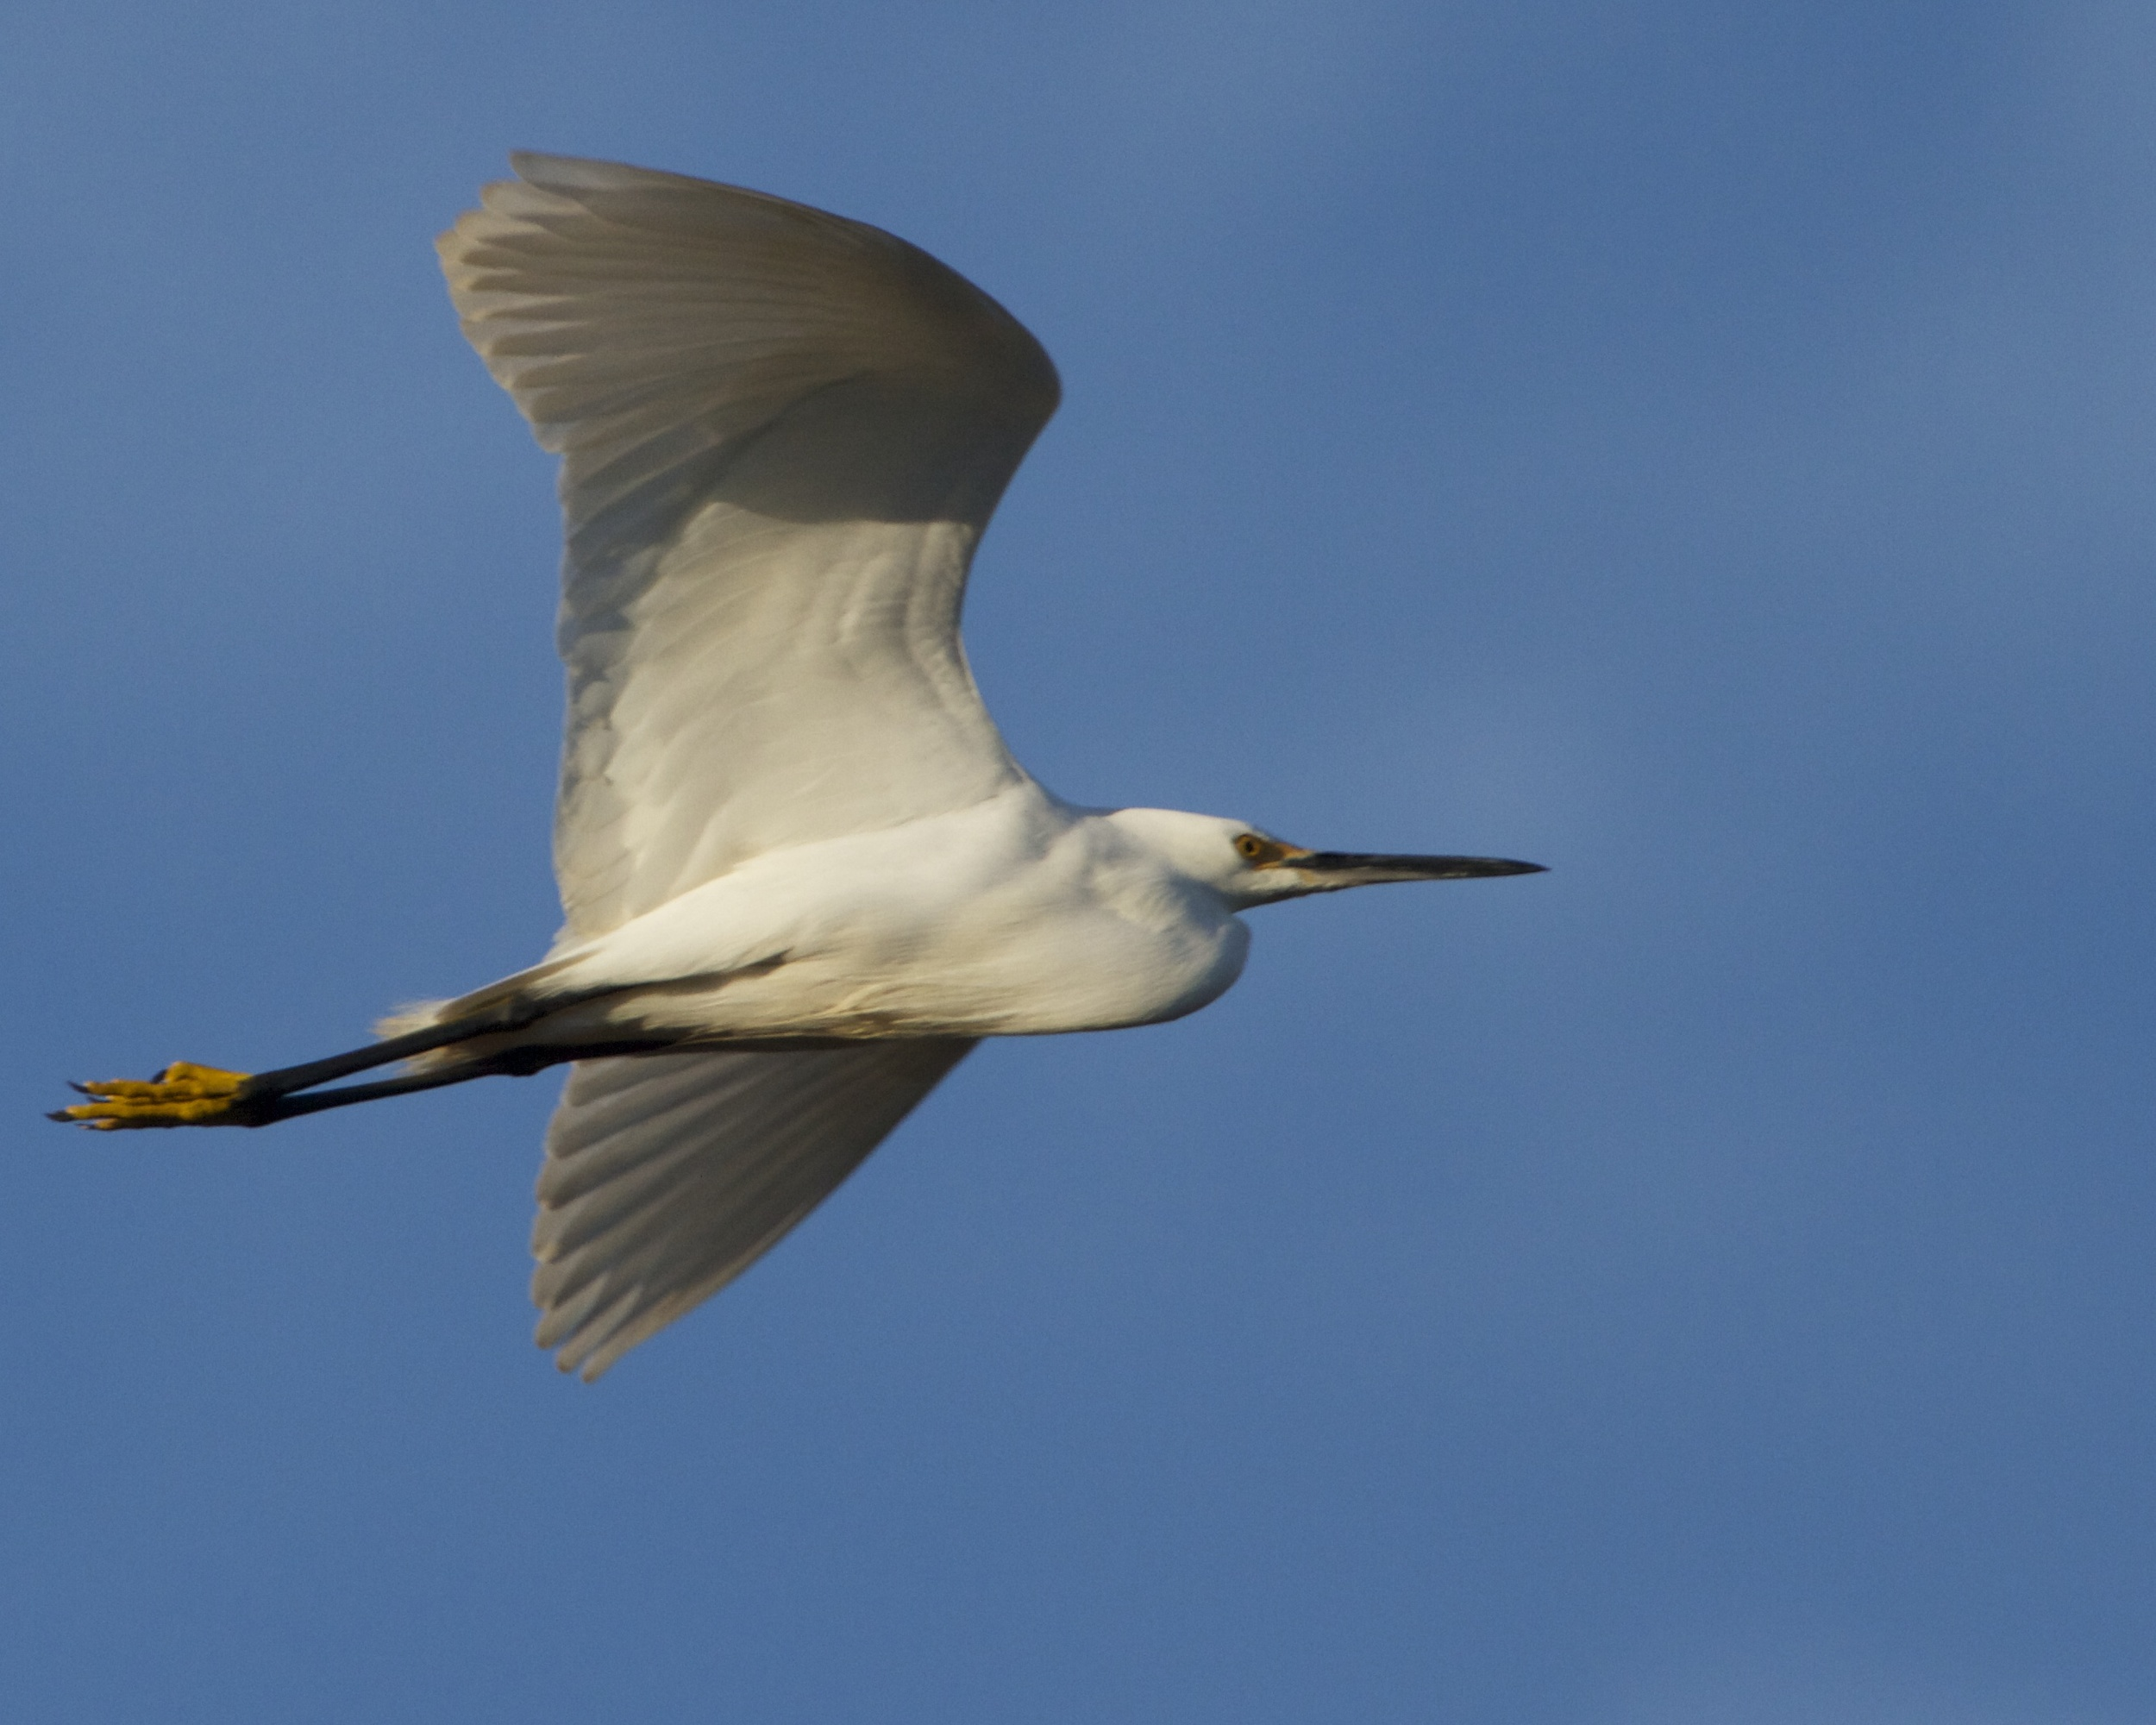 The Snowy Egret catches the sunrise on its wings.